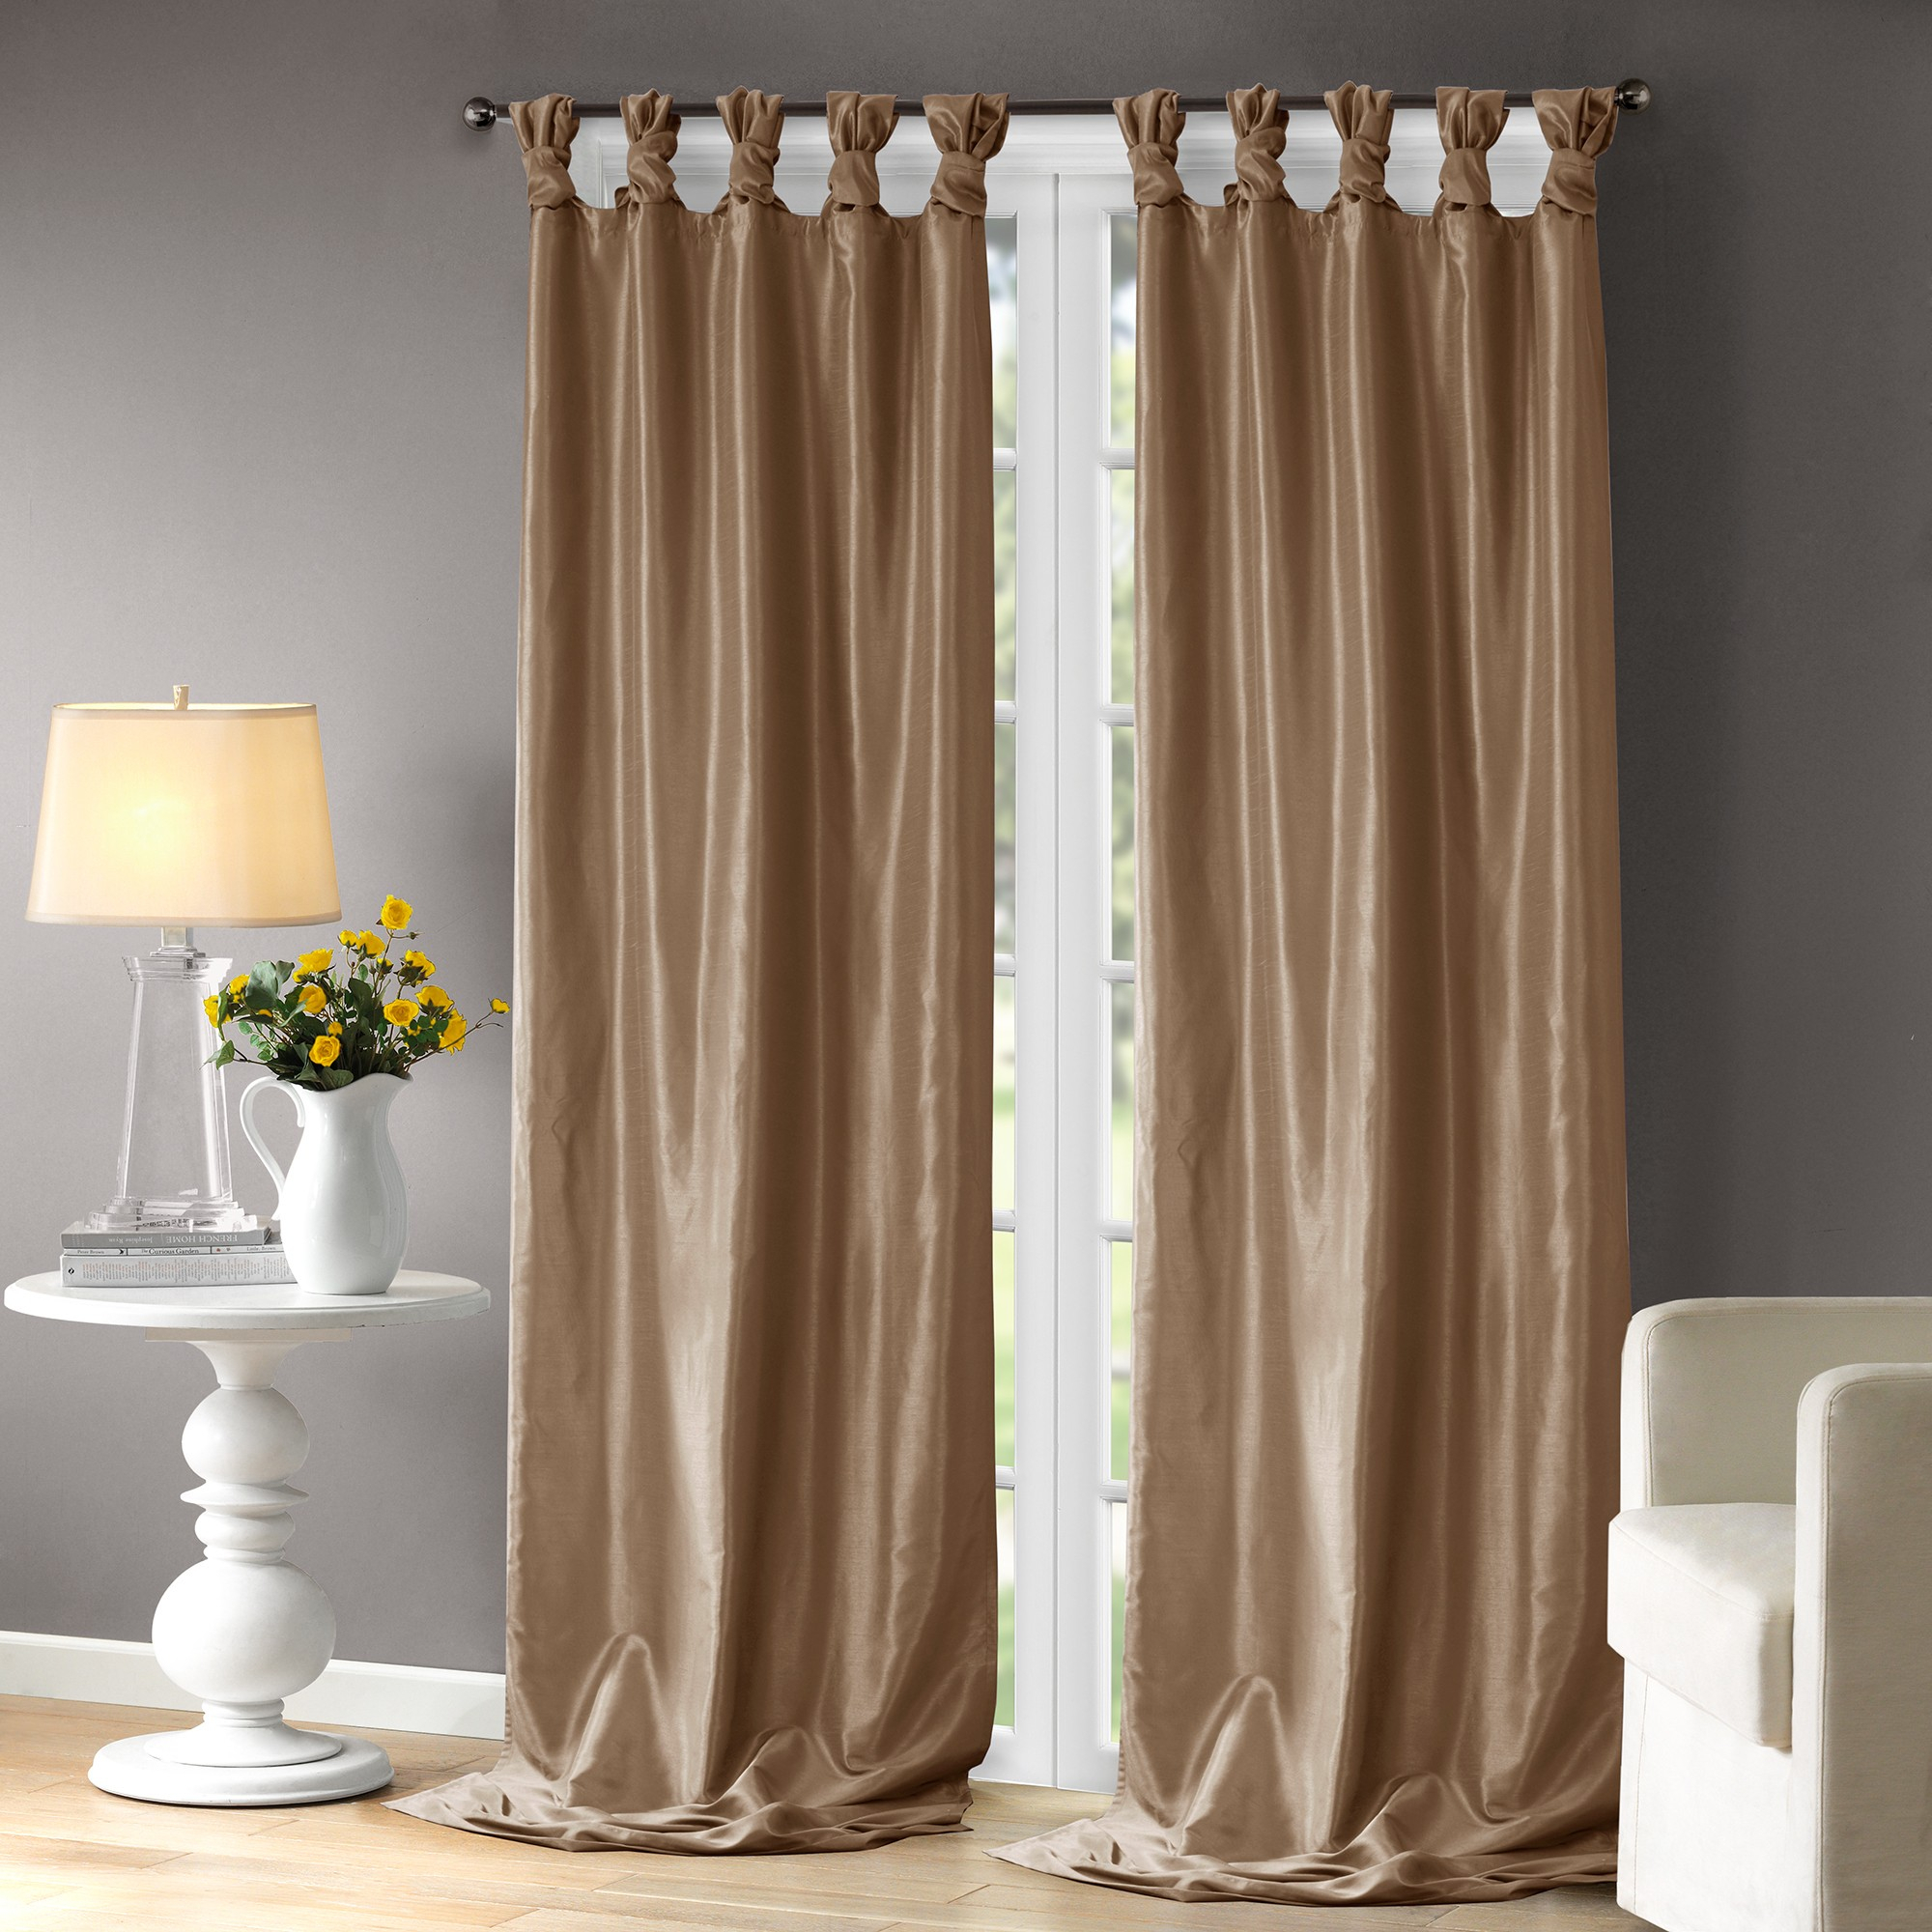 Lillian Window Curtain Bronze 50x120"